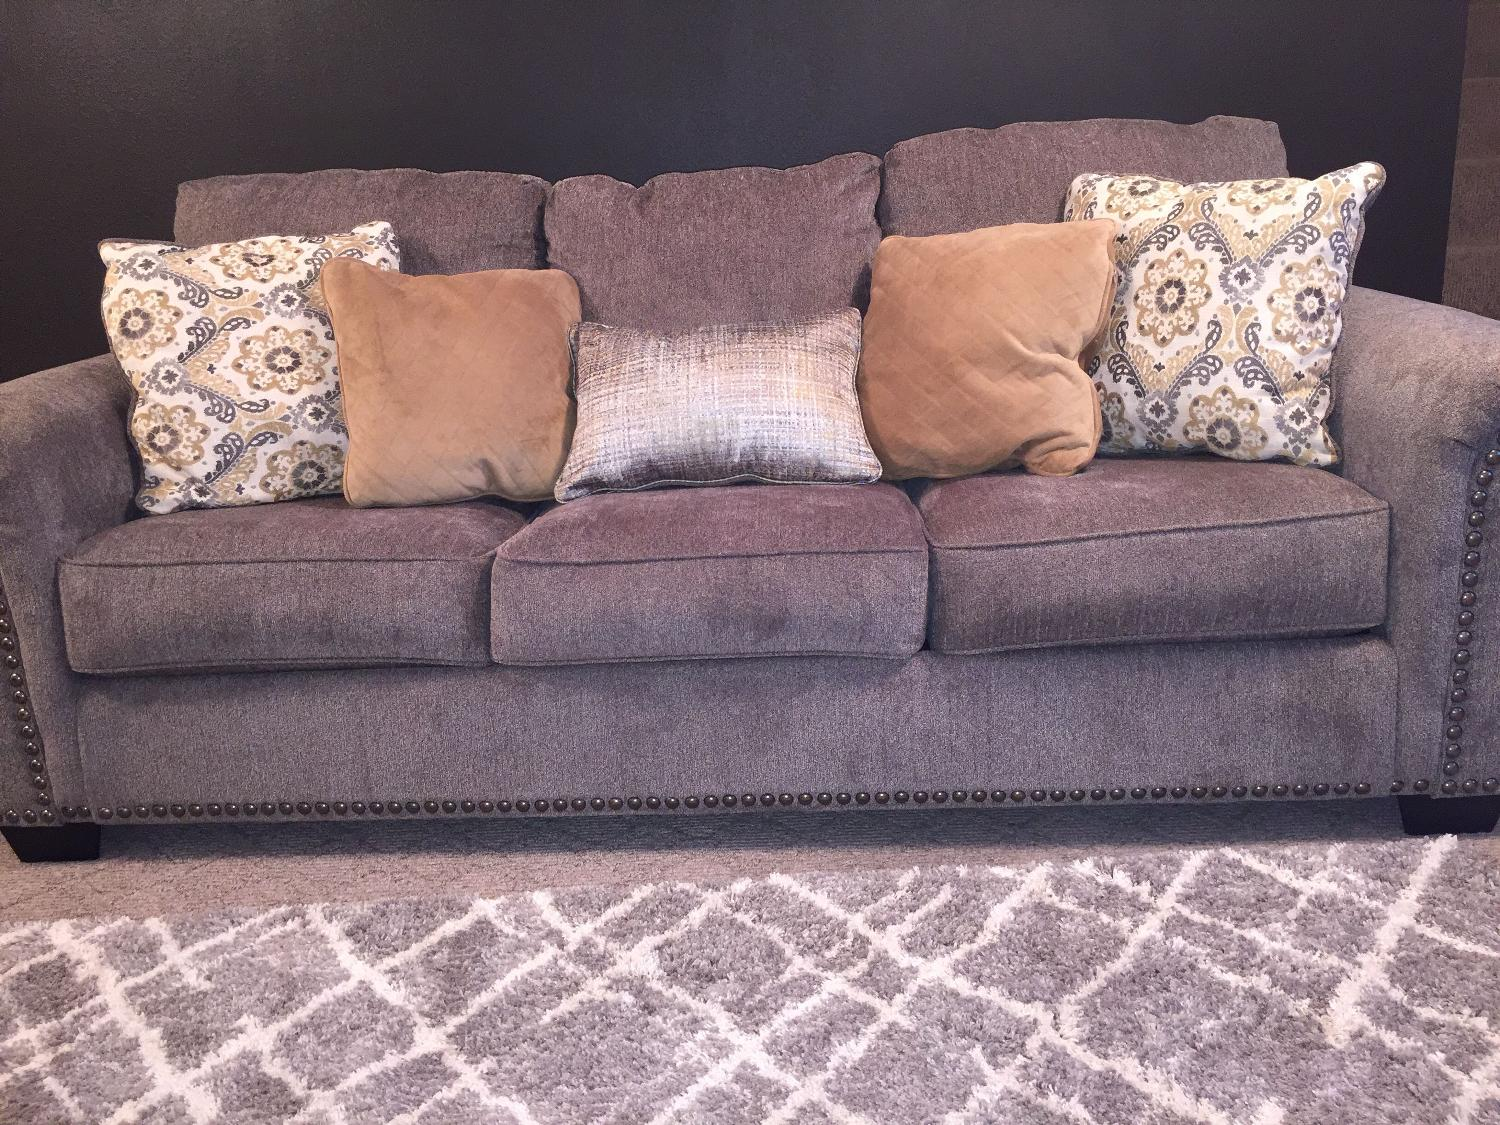 Find More Ashley Furniture Couch And Oversized Chair For Sale At Up To 90 Off Columbia Mo